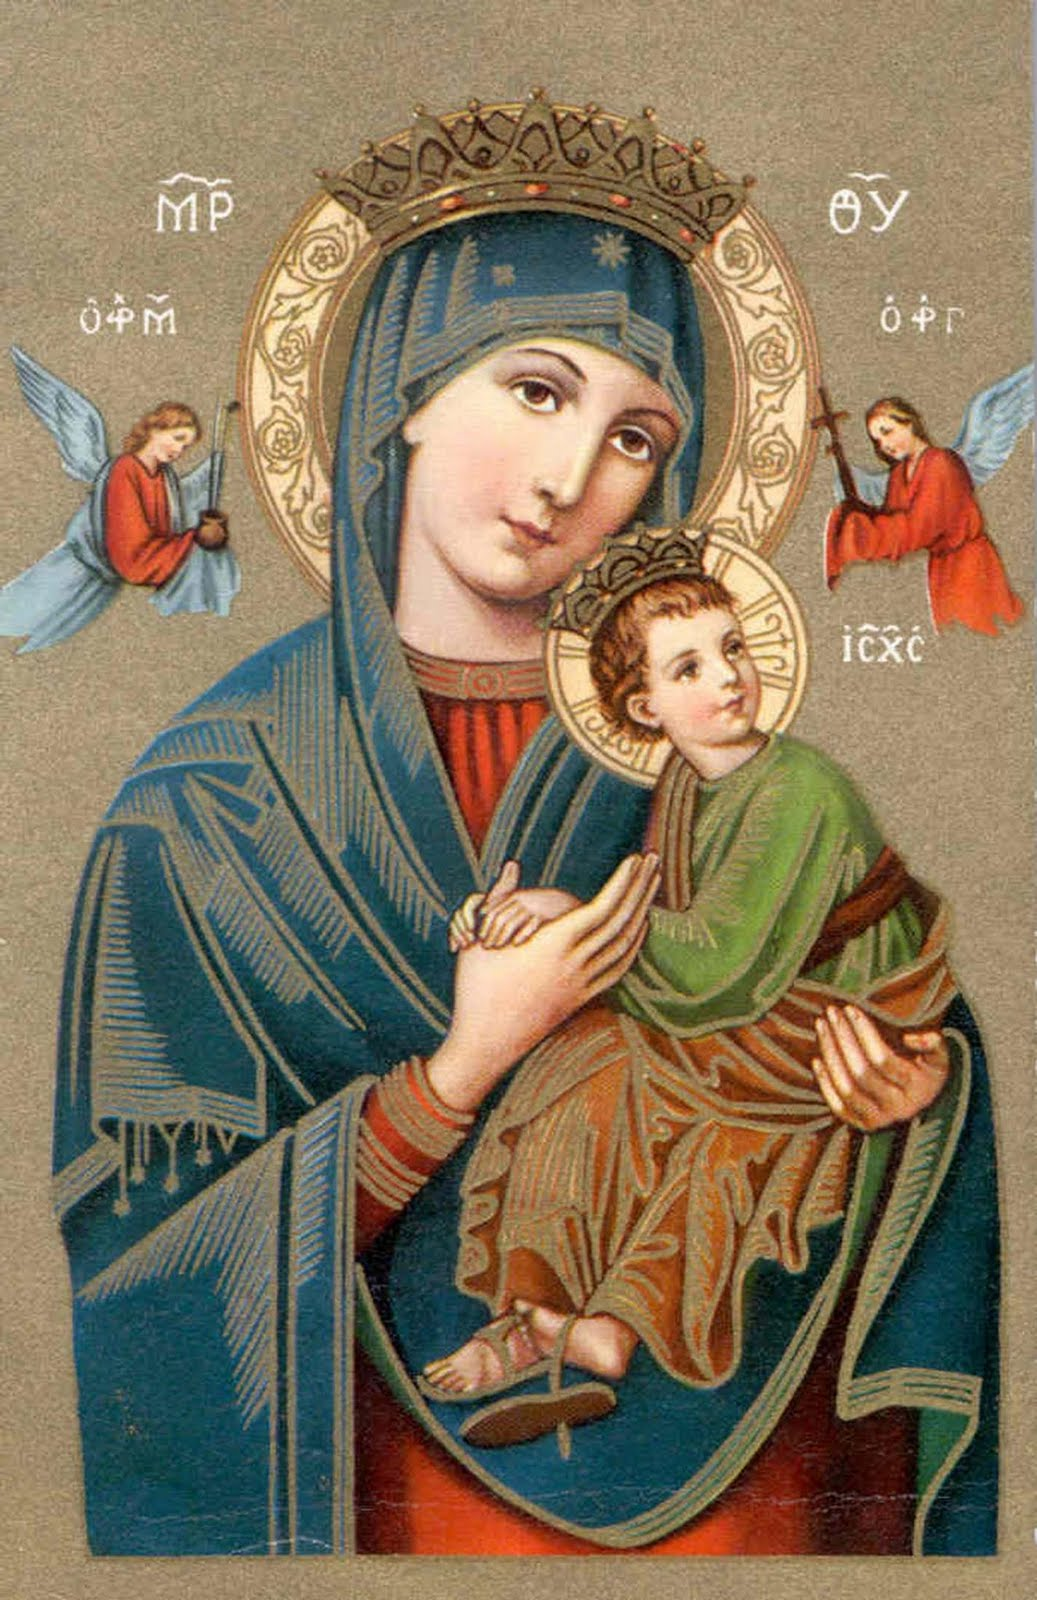 Virgin Mary Images Catholic Lety's Creations: Virg...